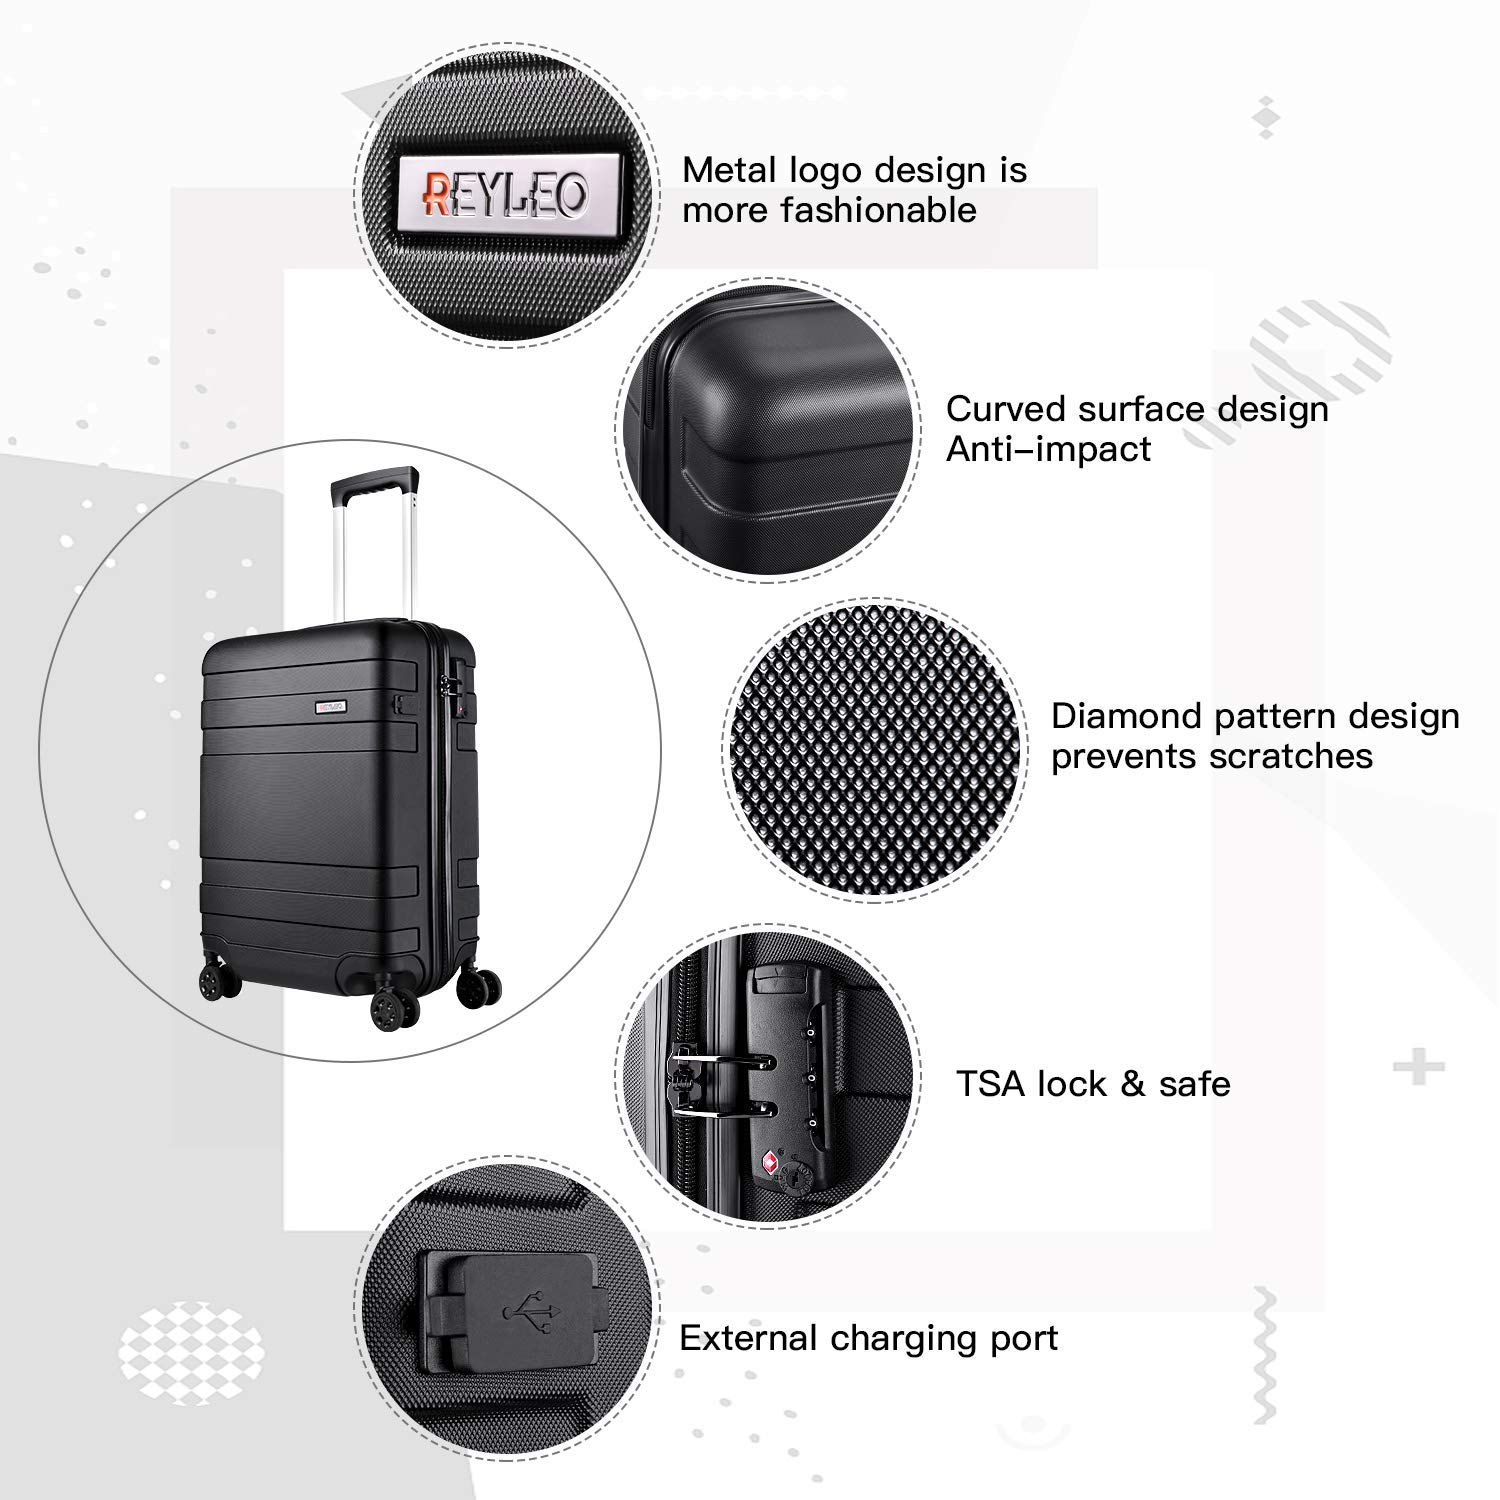 REYLEO Lightweight ABS 21 Inch Hard Shell Travel Carry On Cabin Hand Luggage Suitcase with 4 Wheels and USB Charging Port Travel Bag with TSA Lock Silent Wheels 55CM - 36L